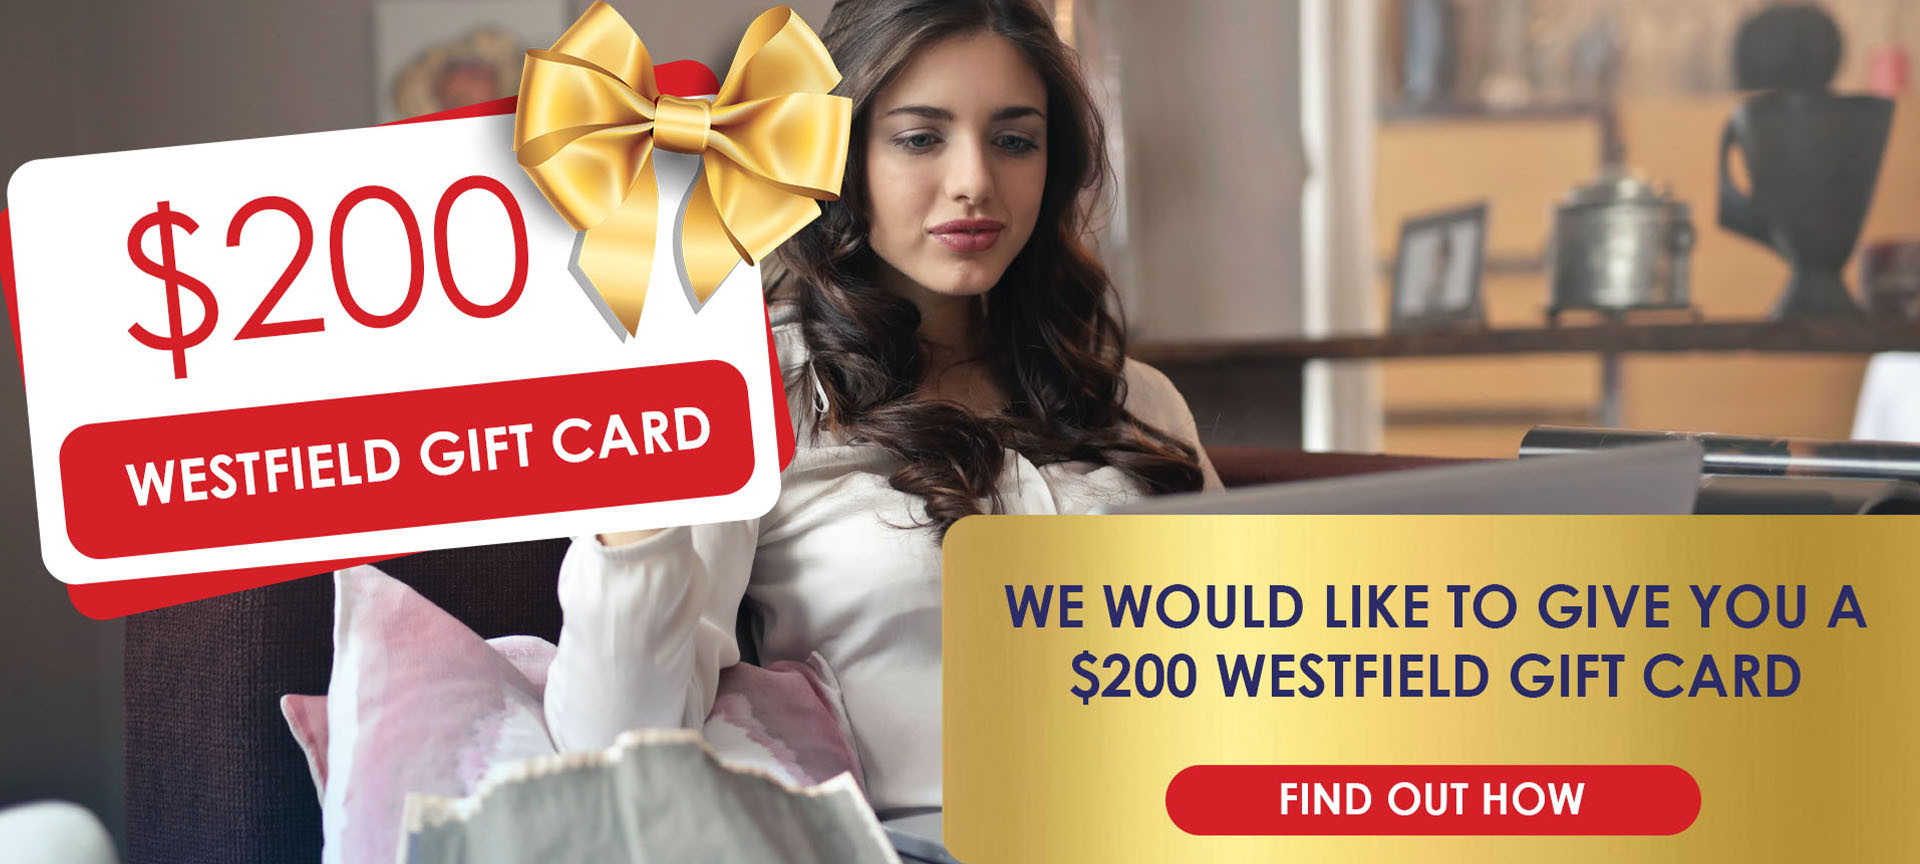 new showhome opening facebook comp 2 Landing Page prize give aways WESTFIELD VOUCHER Header Image MAY 20 - Westfield Card Giveaway